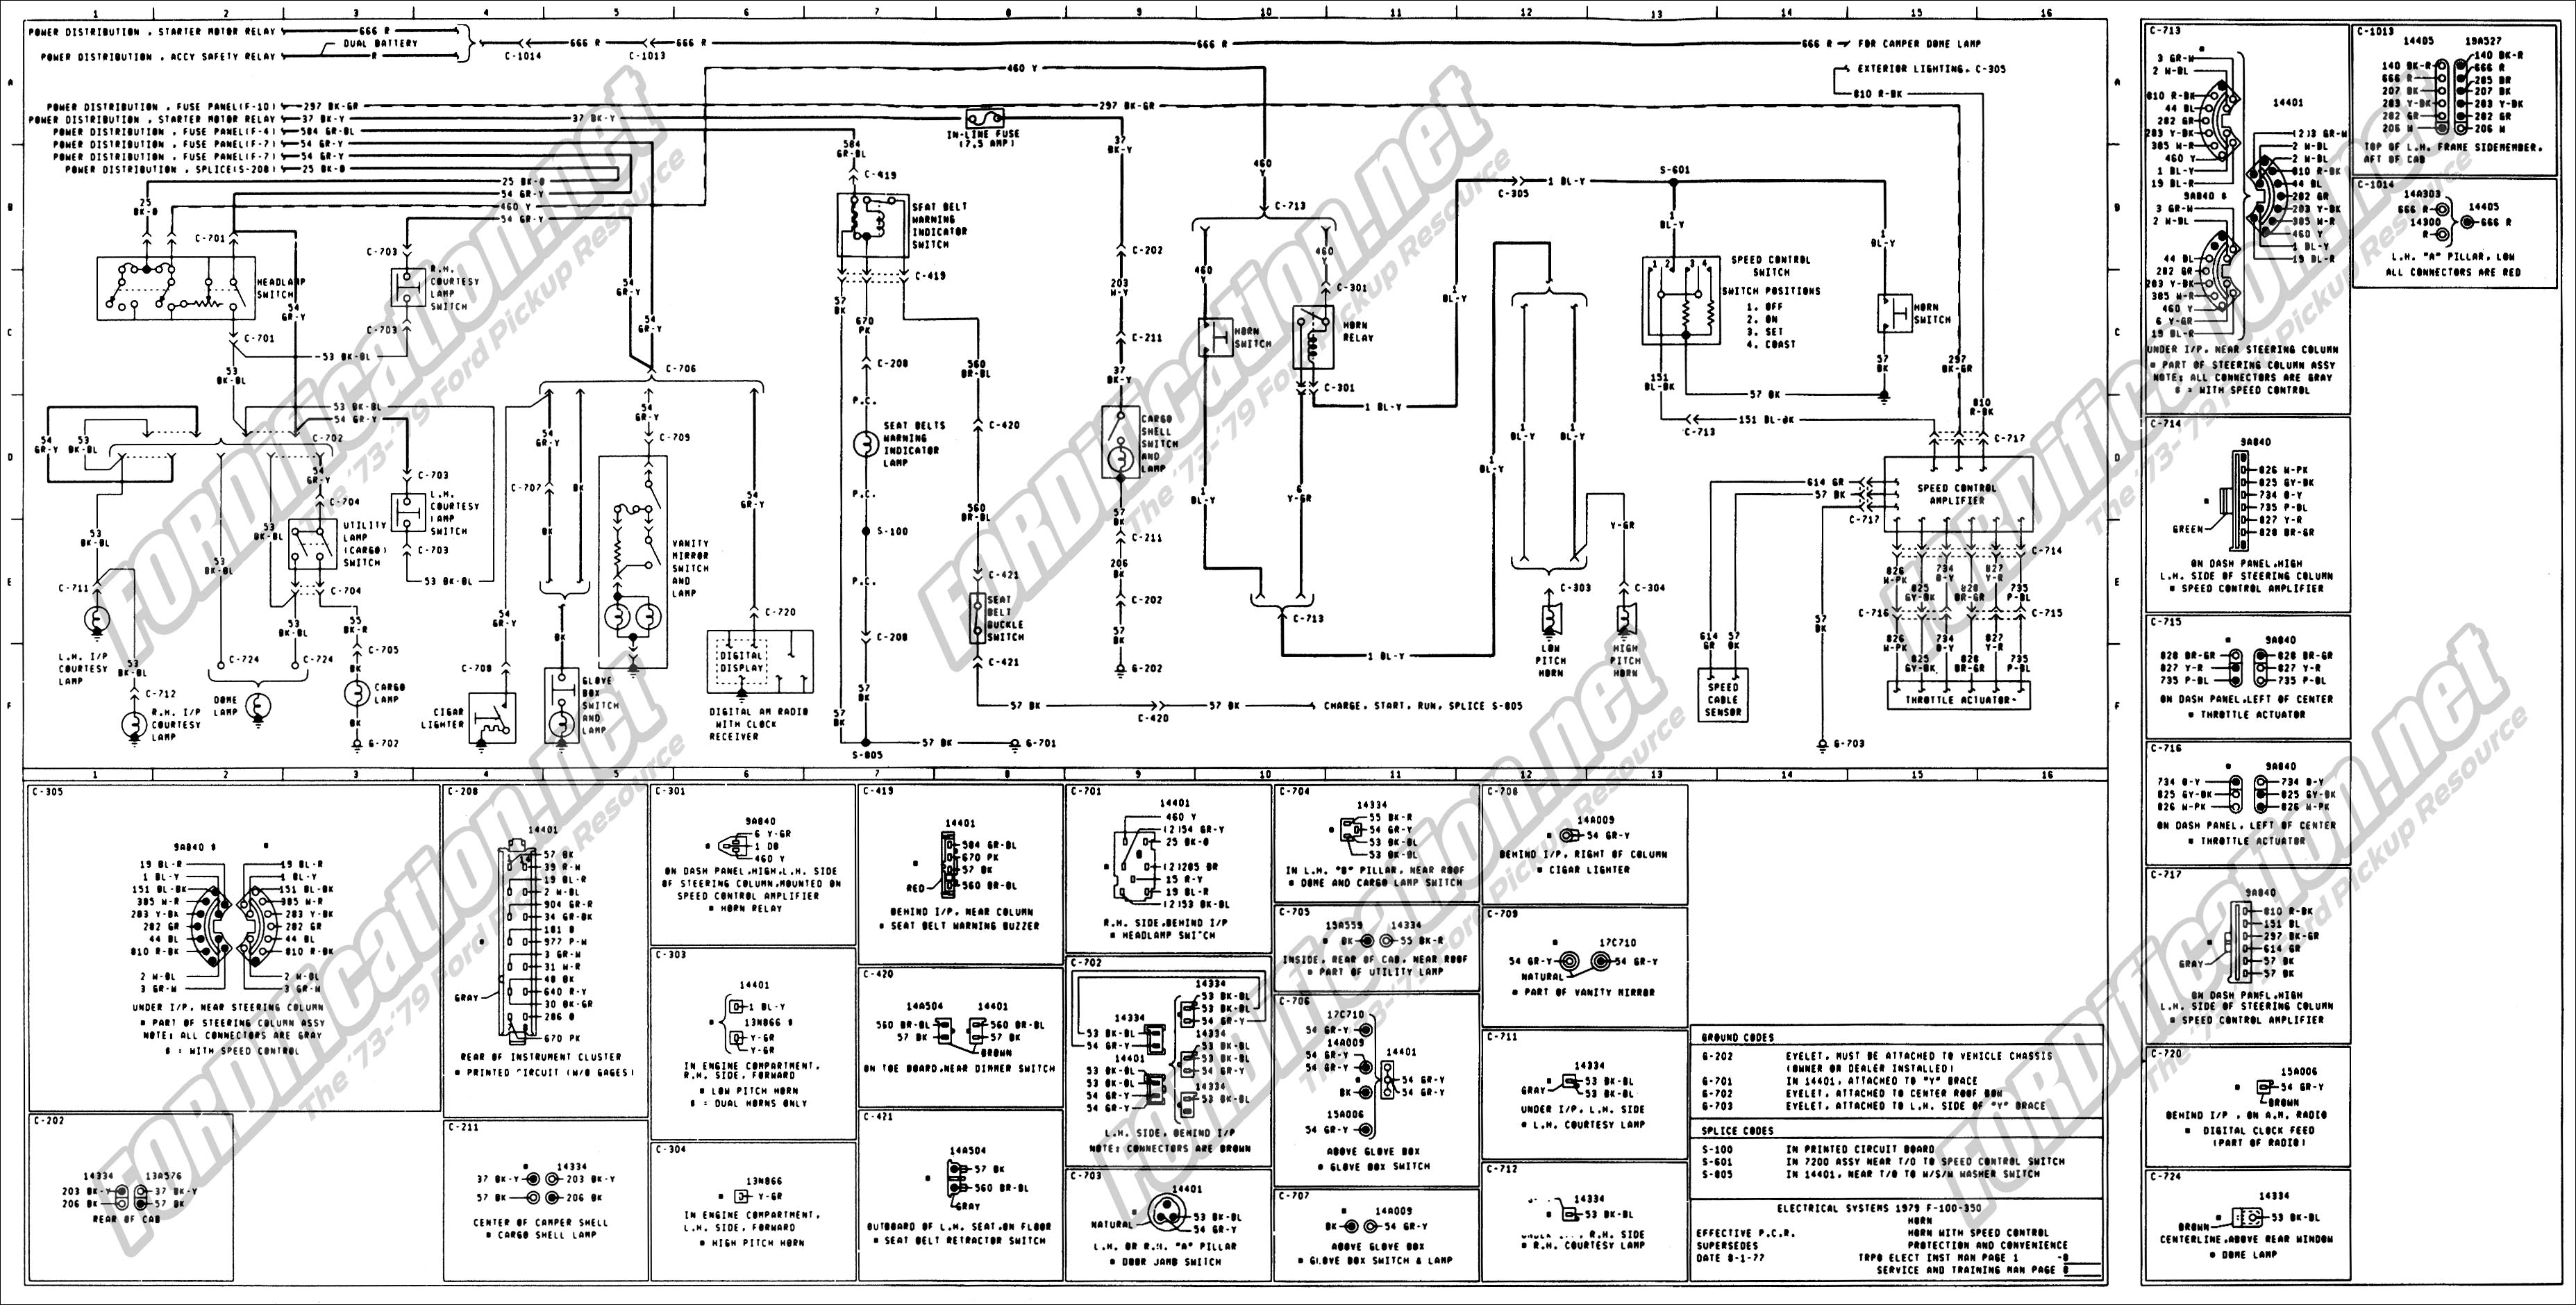 1973 1979 ford truck wiring diagrams schematics fordification net rh fordification net ford f350 wiring diagram ford f350 wiring diagram 1968